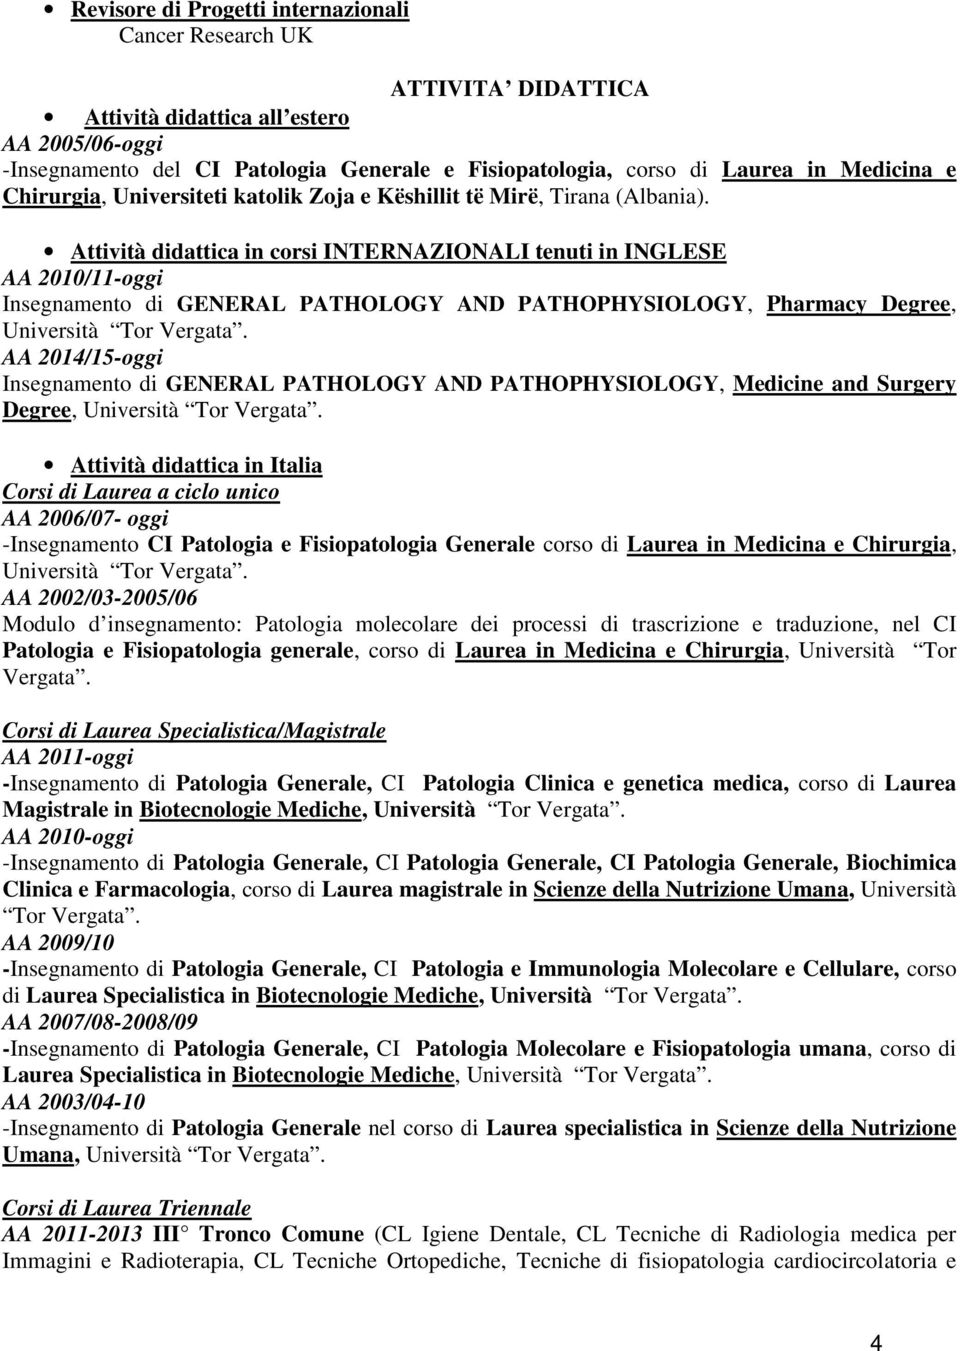 Attività didattica in corsi INTERNAZIONALI tenuti in INGLESE AA 2010/11-oggi Insegnamento di GENERAL PATHOLOGY AND PATHOPHYSIOLOGY, Pharmacy Degree, Università Tor Vergata.